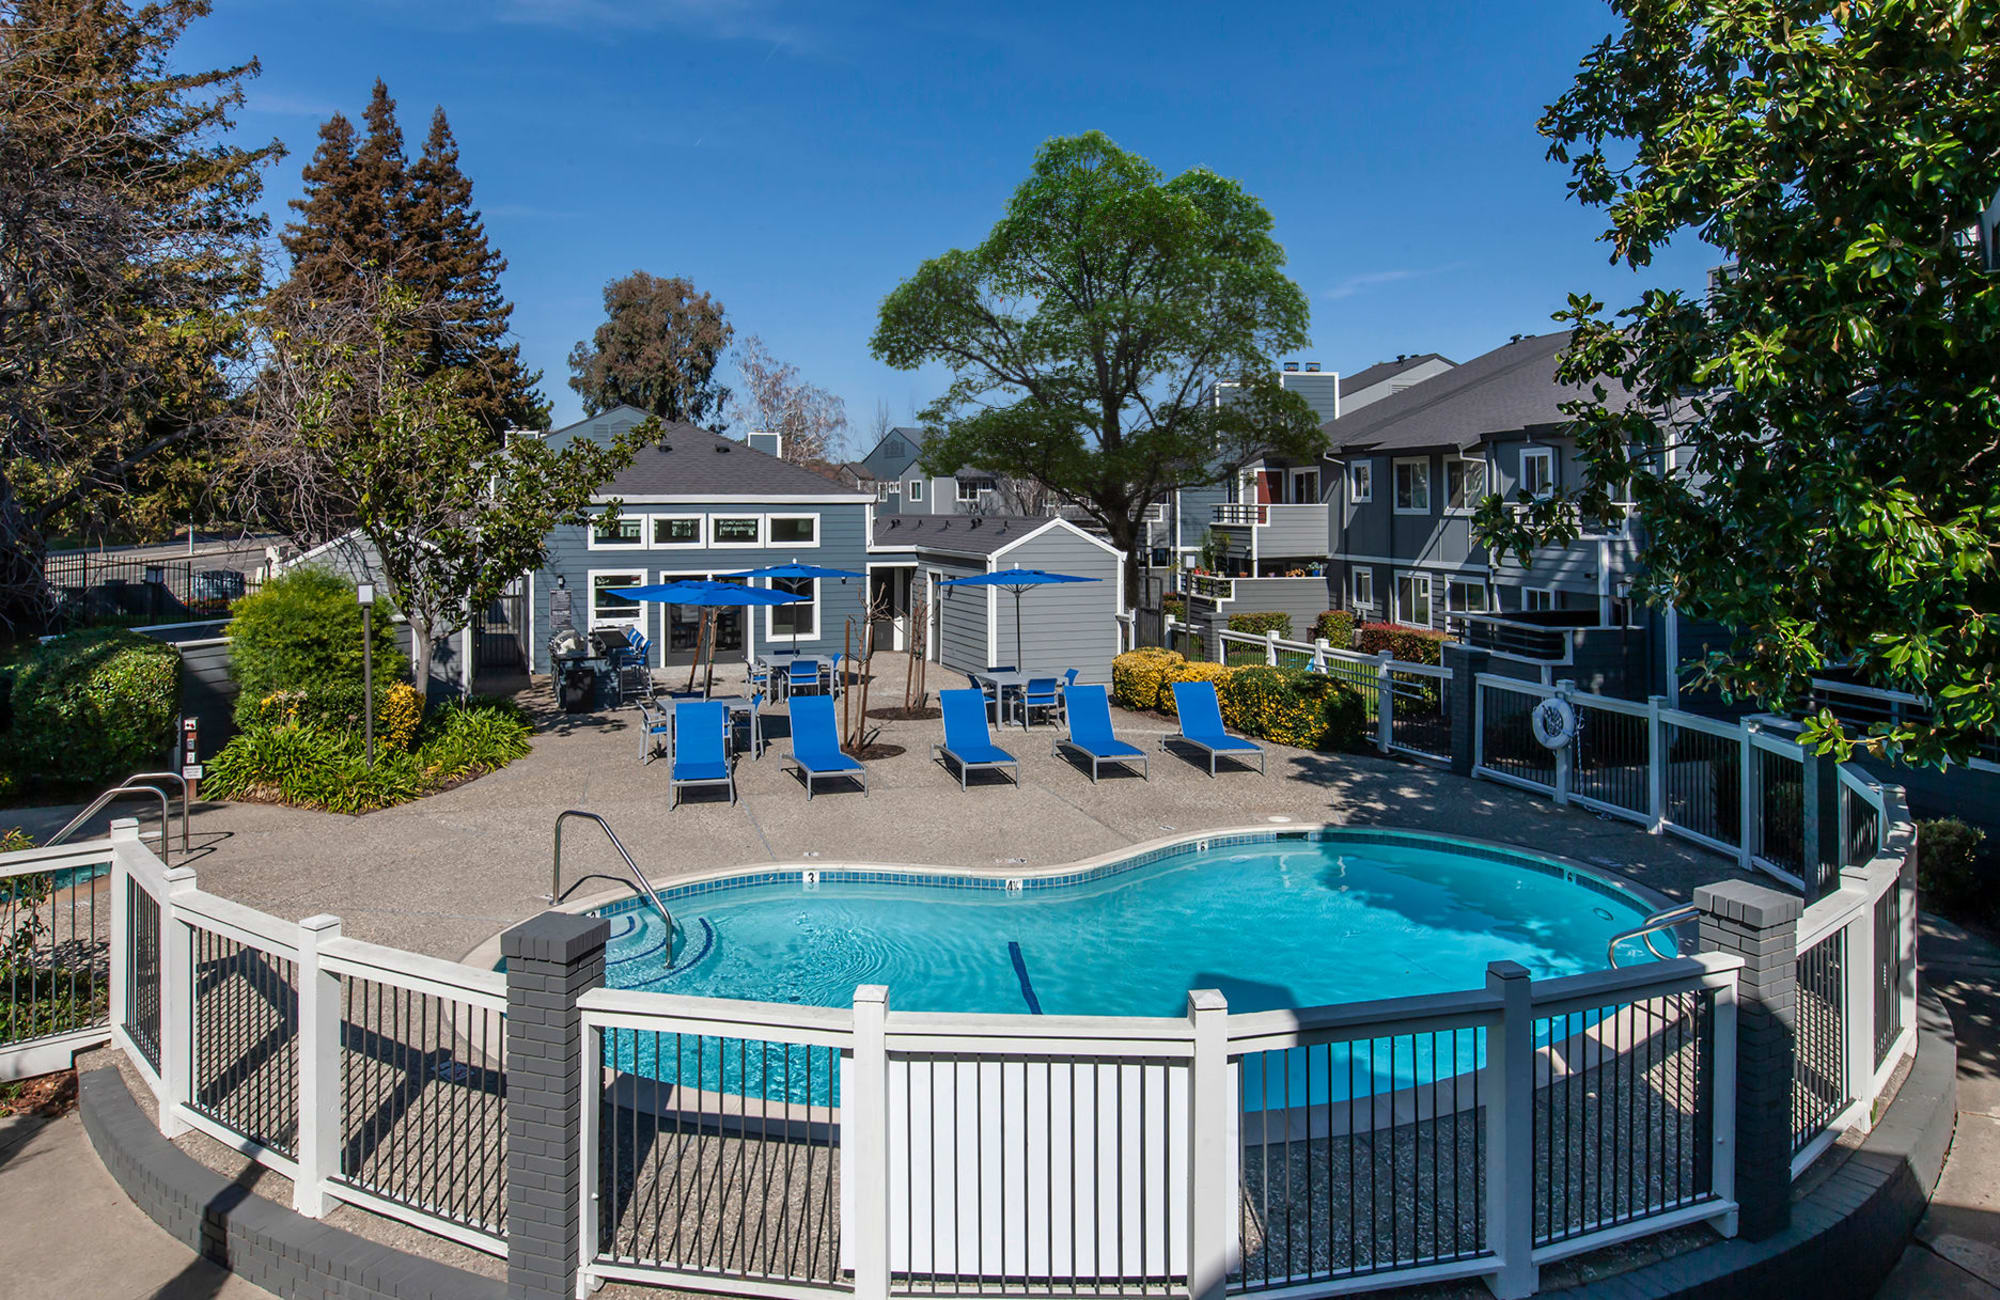 Pool view with exterior building shot in Fairfield, CA